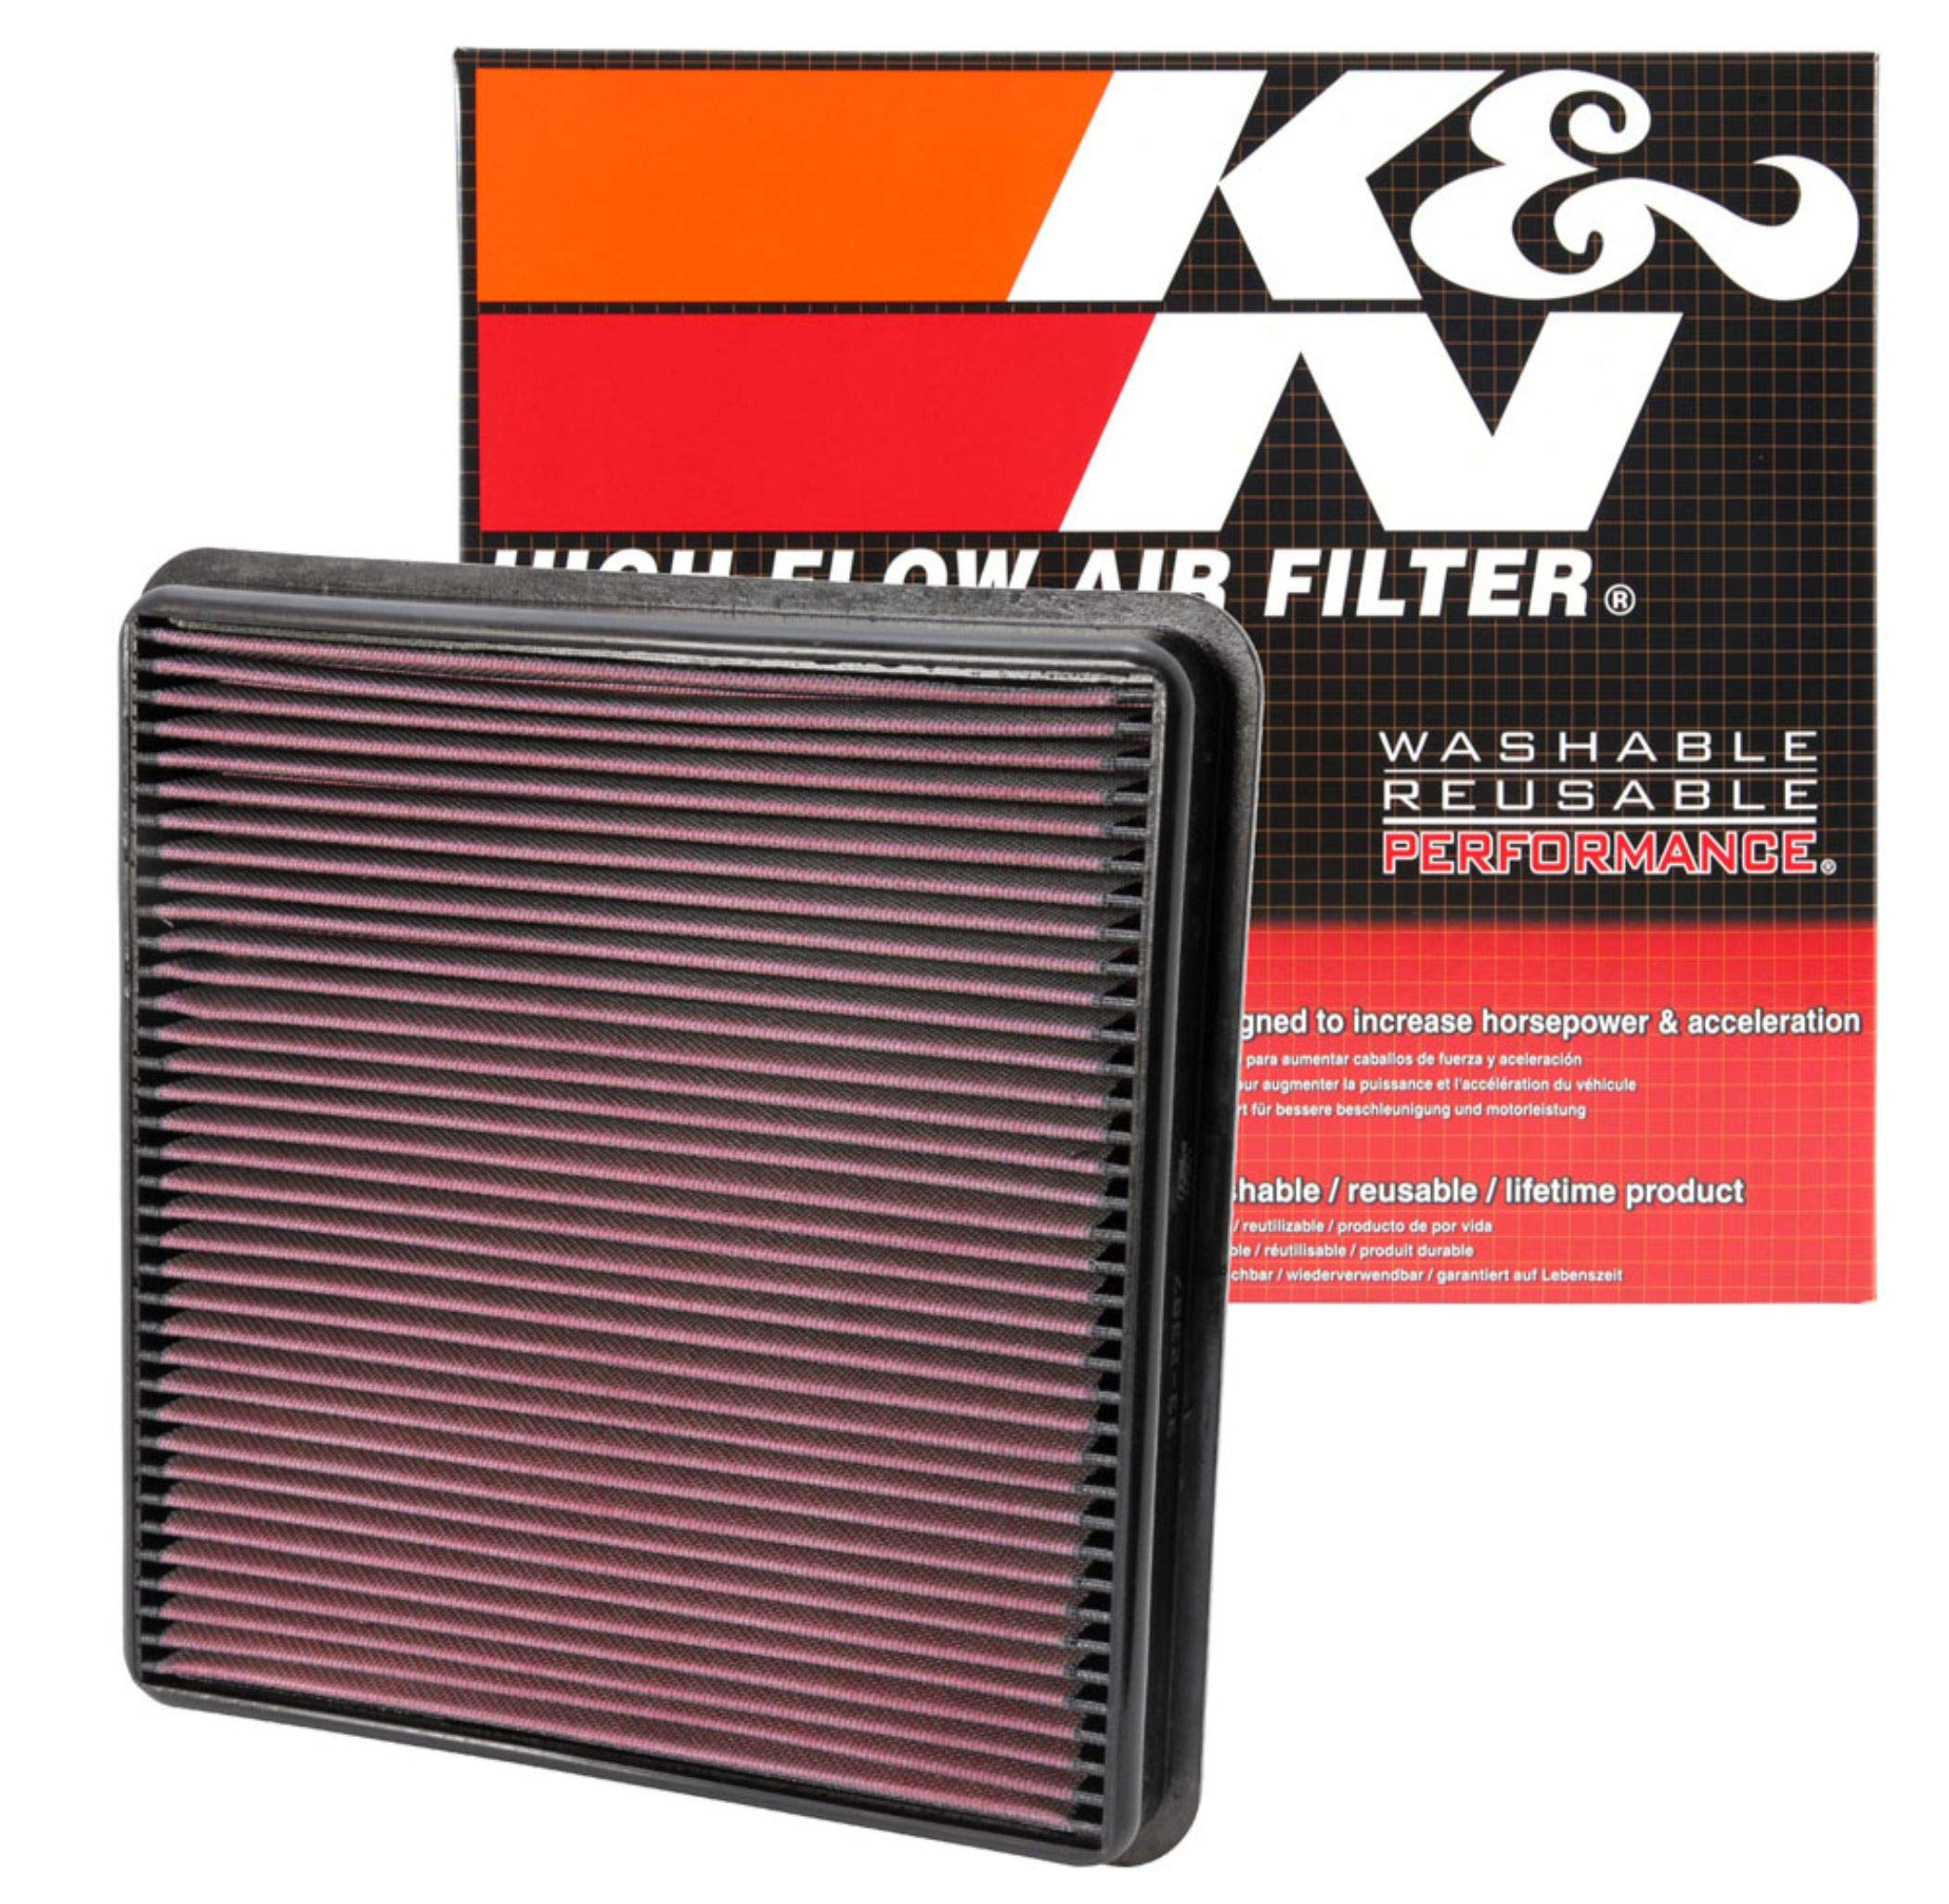 K&N engine air filter, washable and reusable:  2007-2019 Toyota/Lexus V8 Truck and SUV (Land Cruiser, Tundra, Sequoia, LX 570) 33-2387 by K&N Engineering